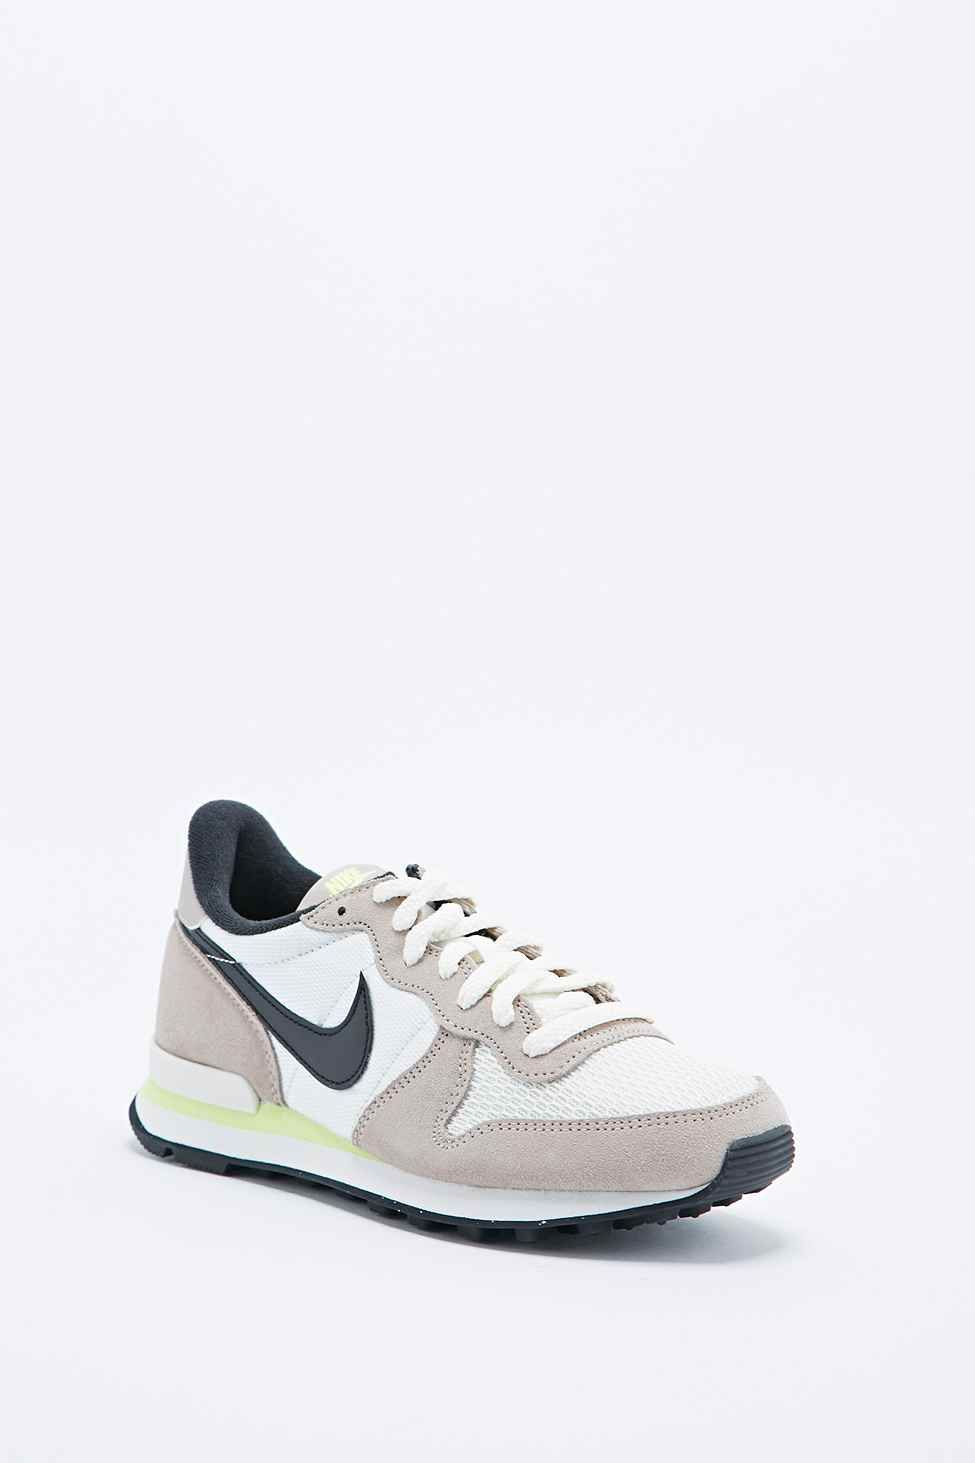 nike internationalist femme peche